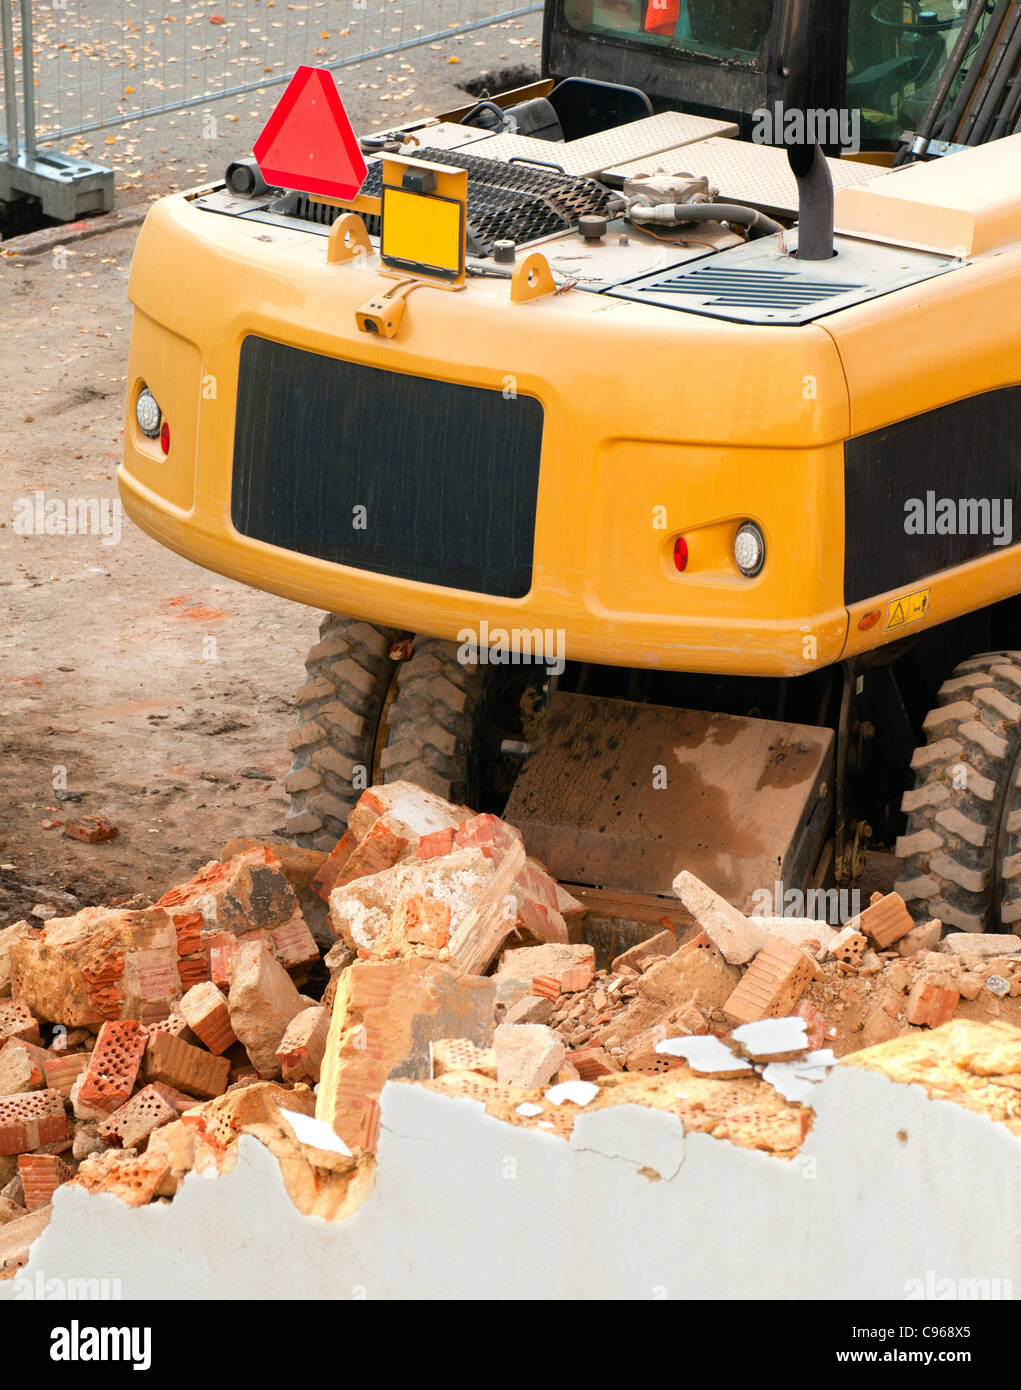 Detail of Yellow Digger Near Building Under Demolition - Stock Image